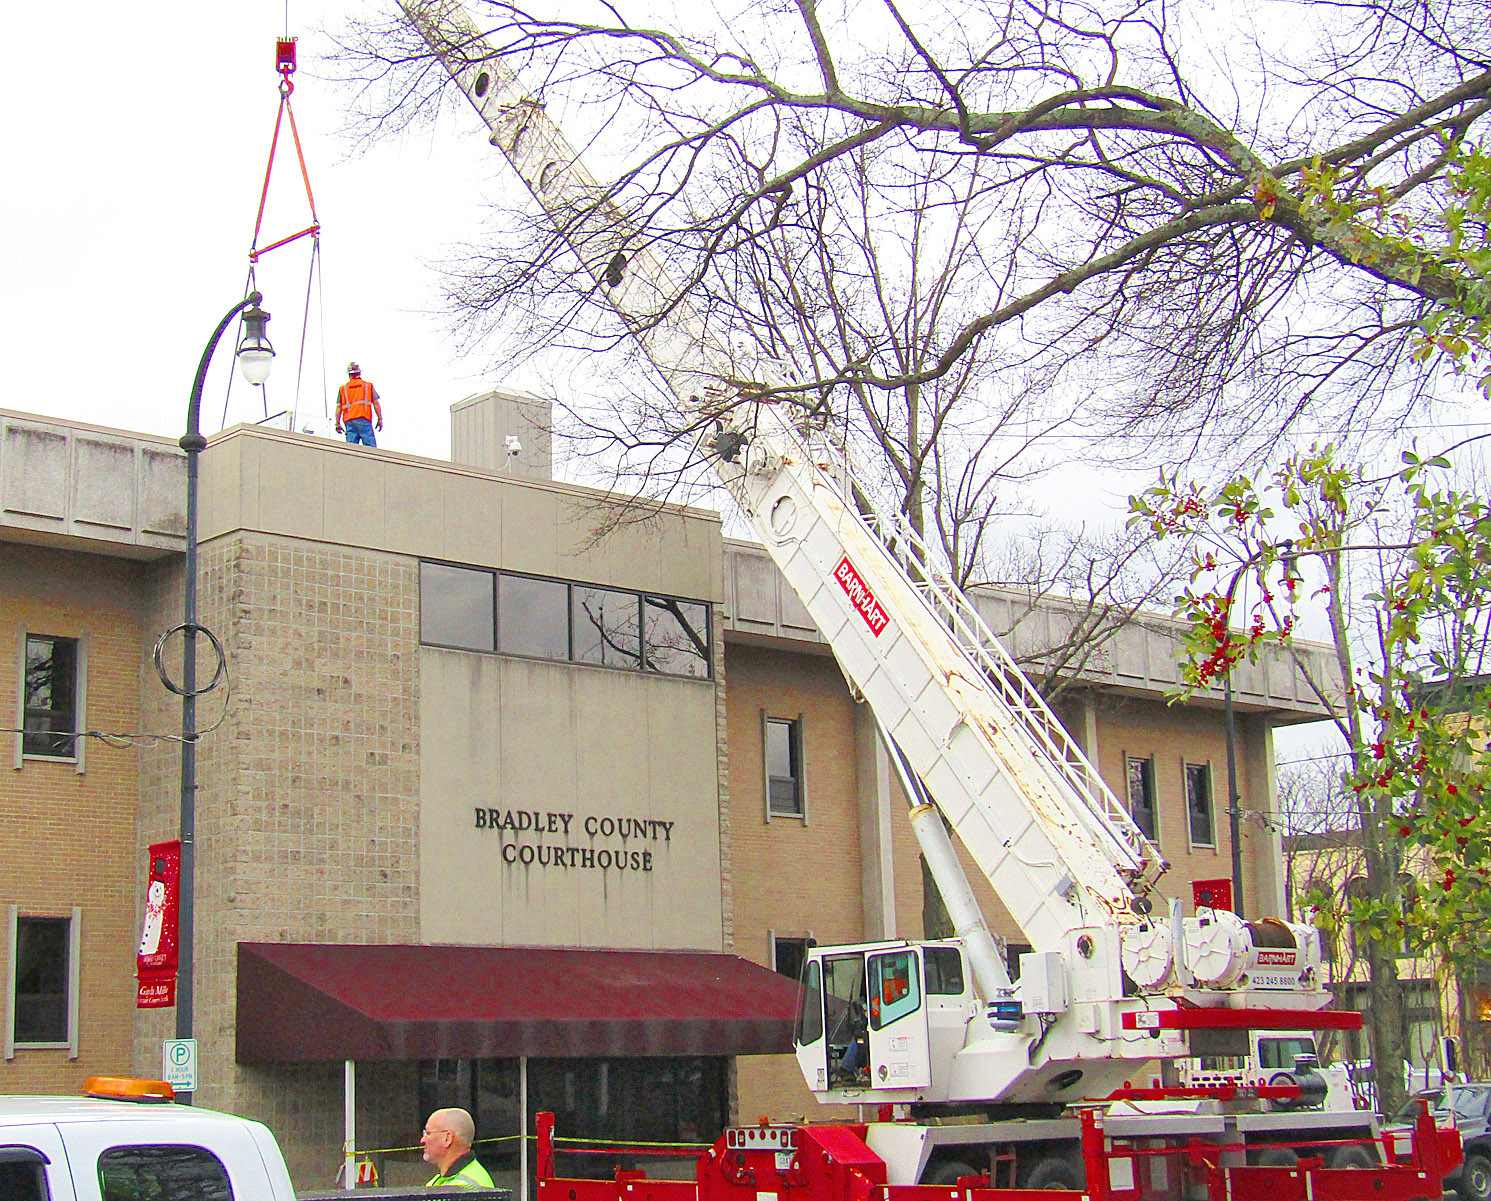 REPAIRS on the Bradley County Courthouse are progressing and remain on schedule. Bradley County Mayor D. Gary Davis reports the downtown building's reopening remains set for late April to early May. Here, a crane hoists portions of the new HVAC system to the roof.